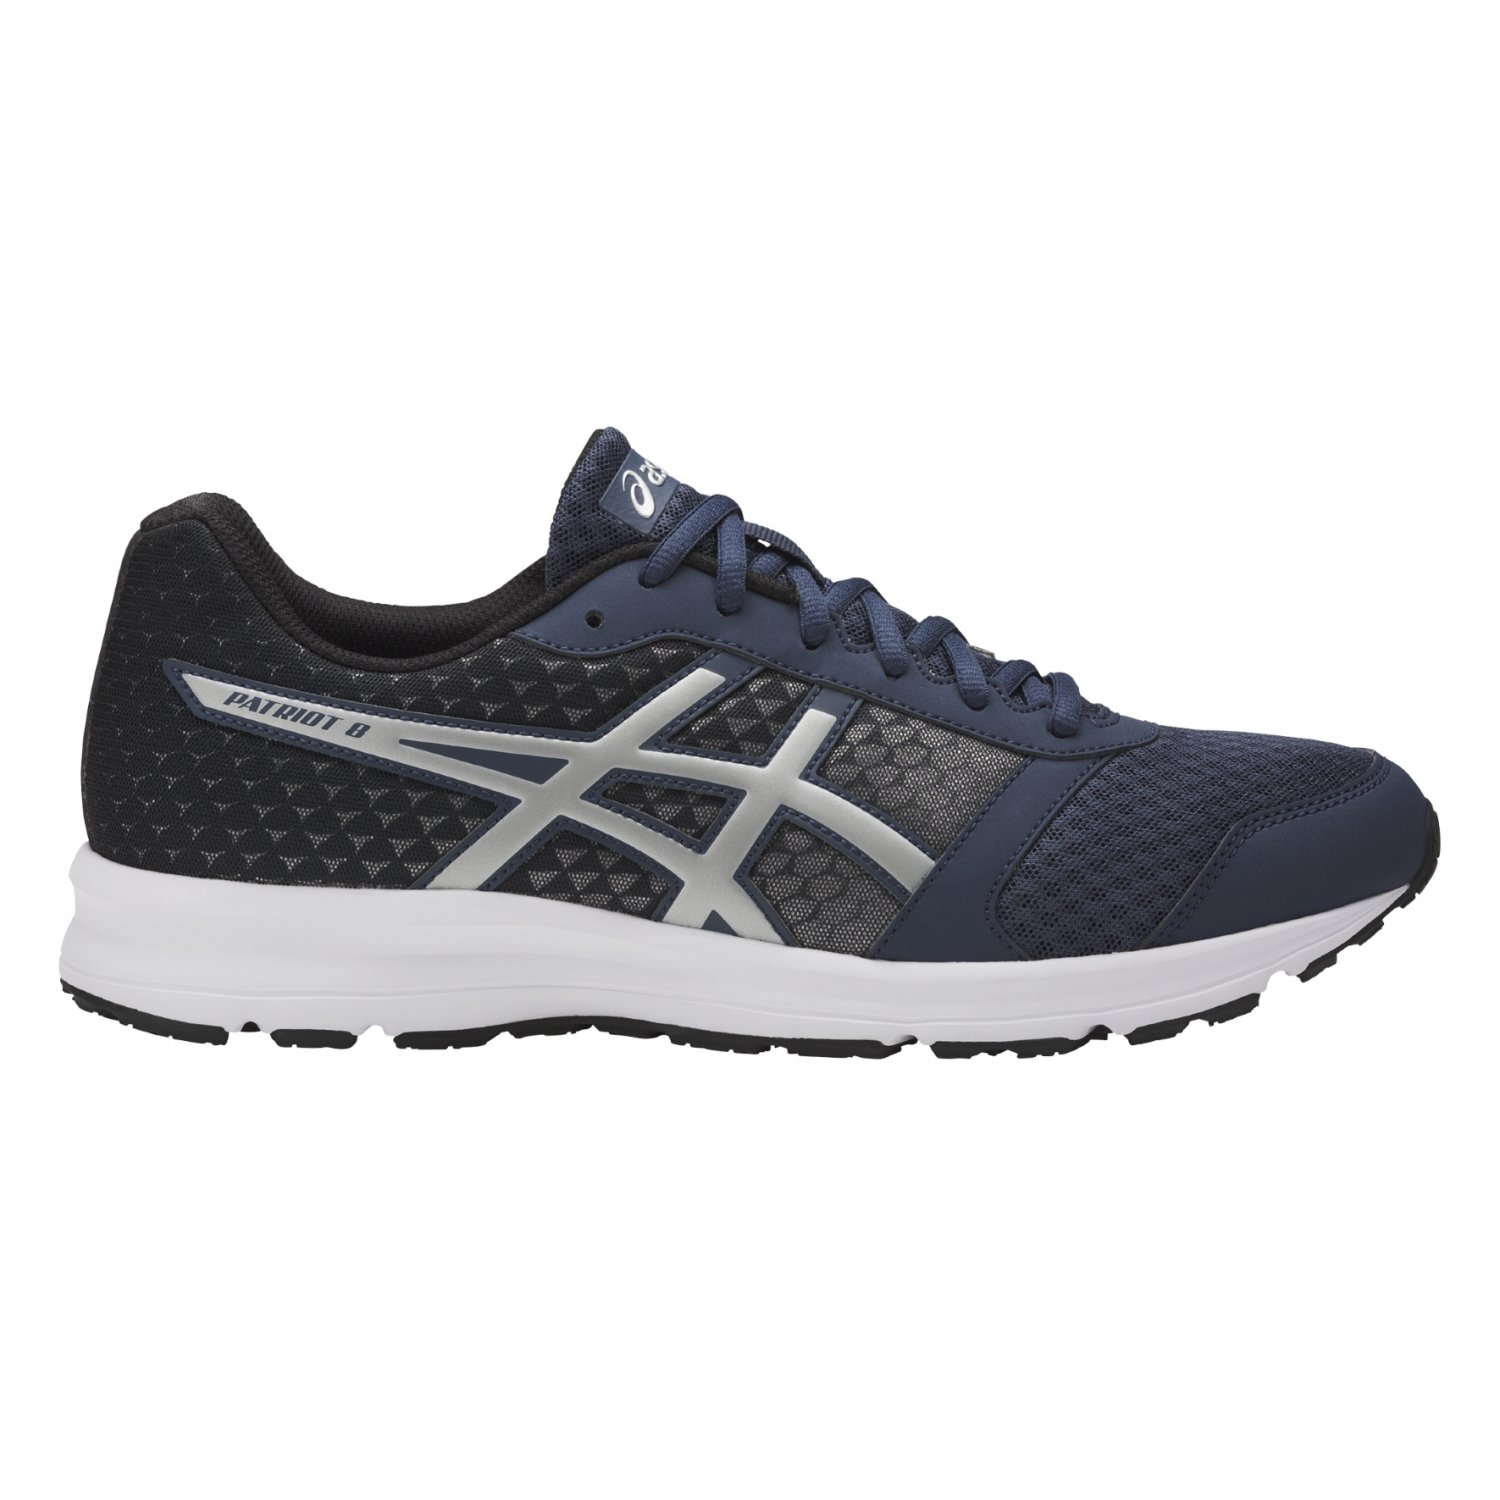 asics patriot 8 womens running shoes review singapore